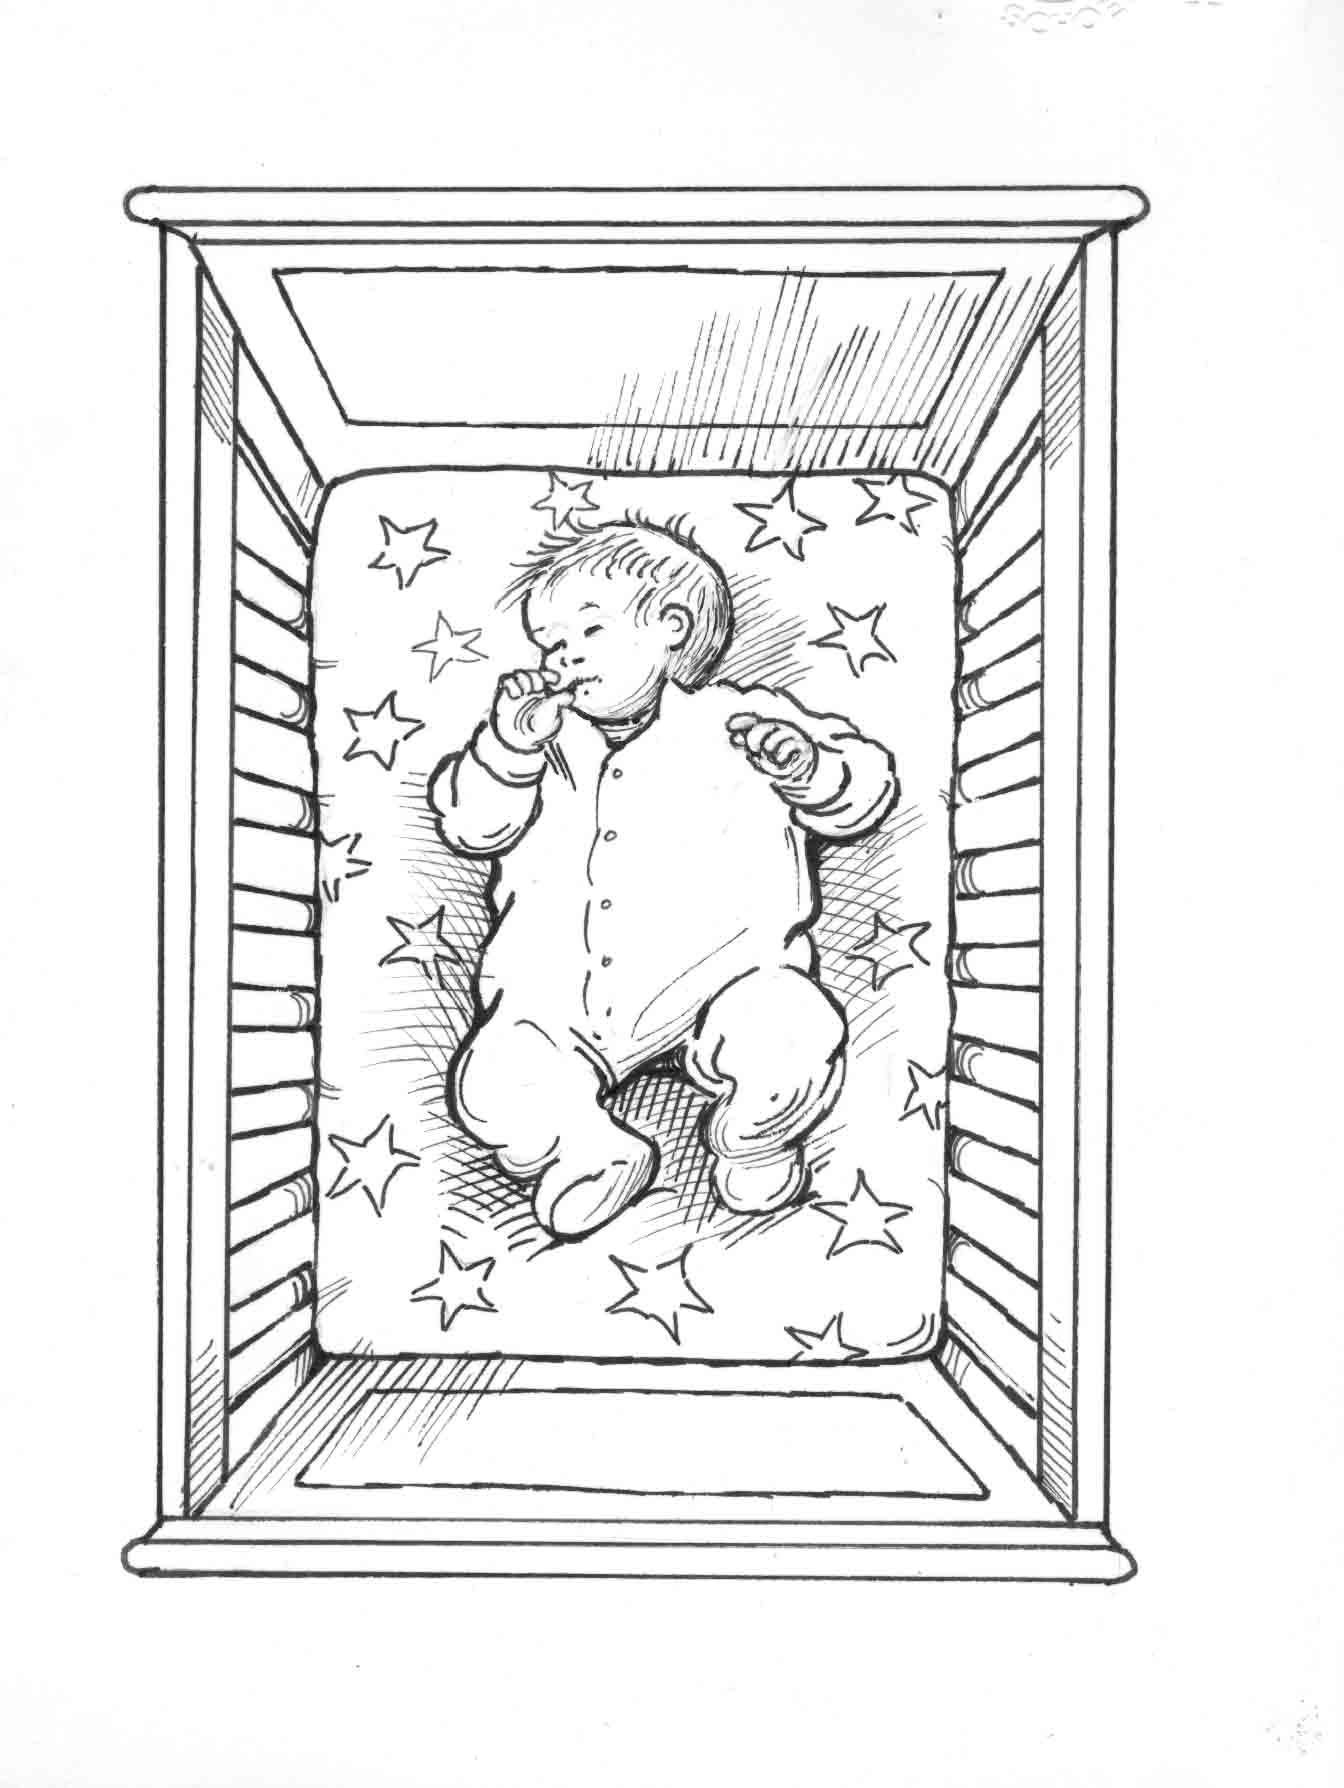 bare crib is safest for baby